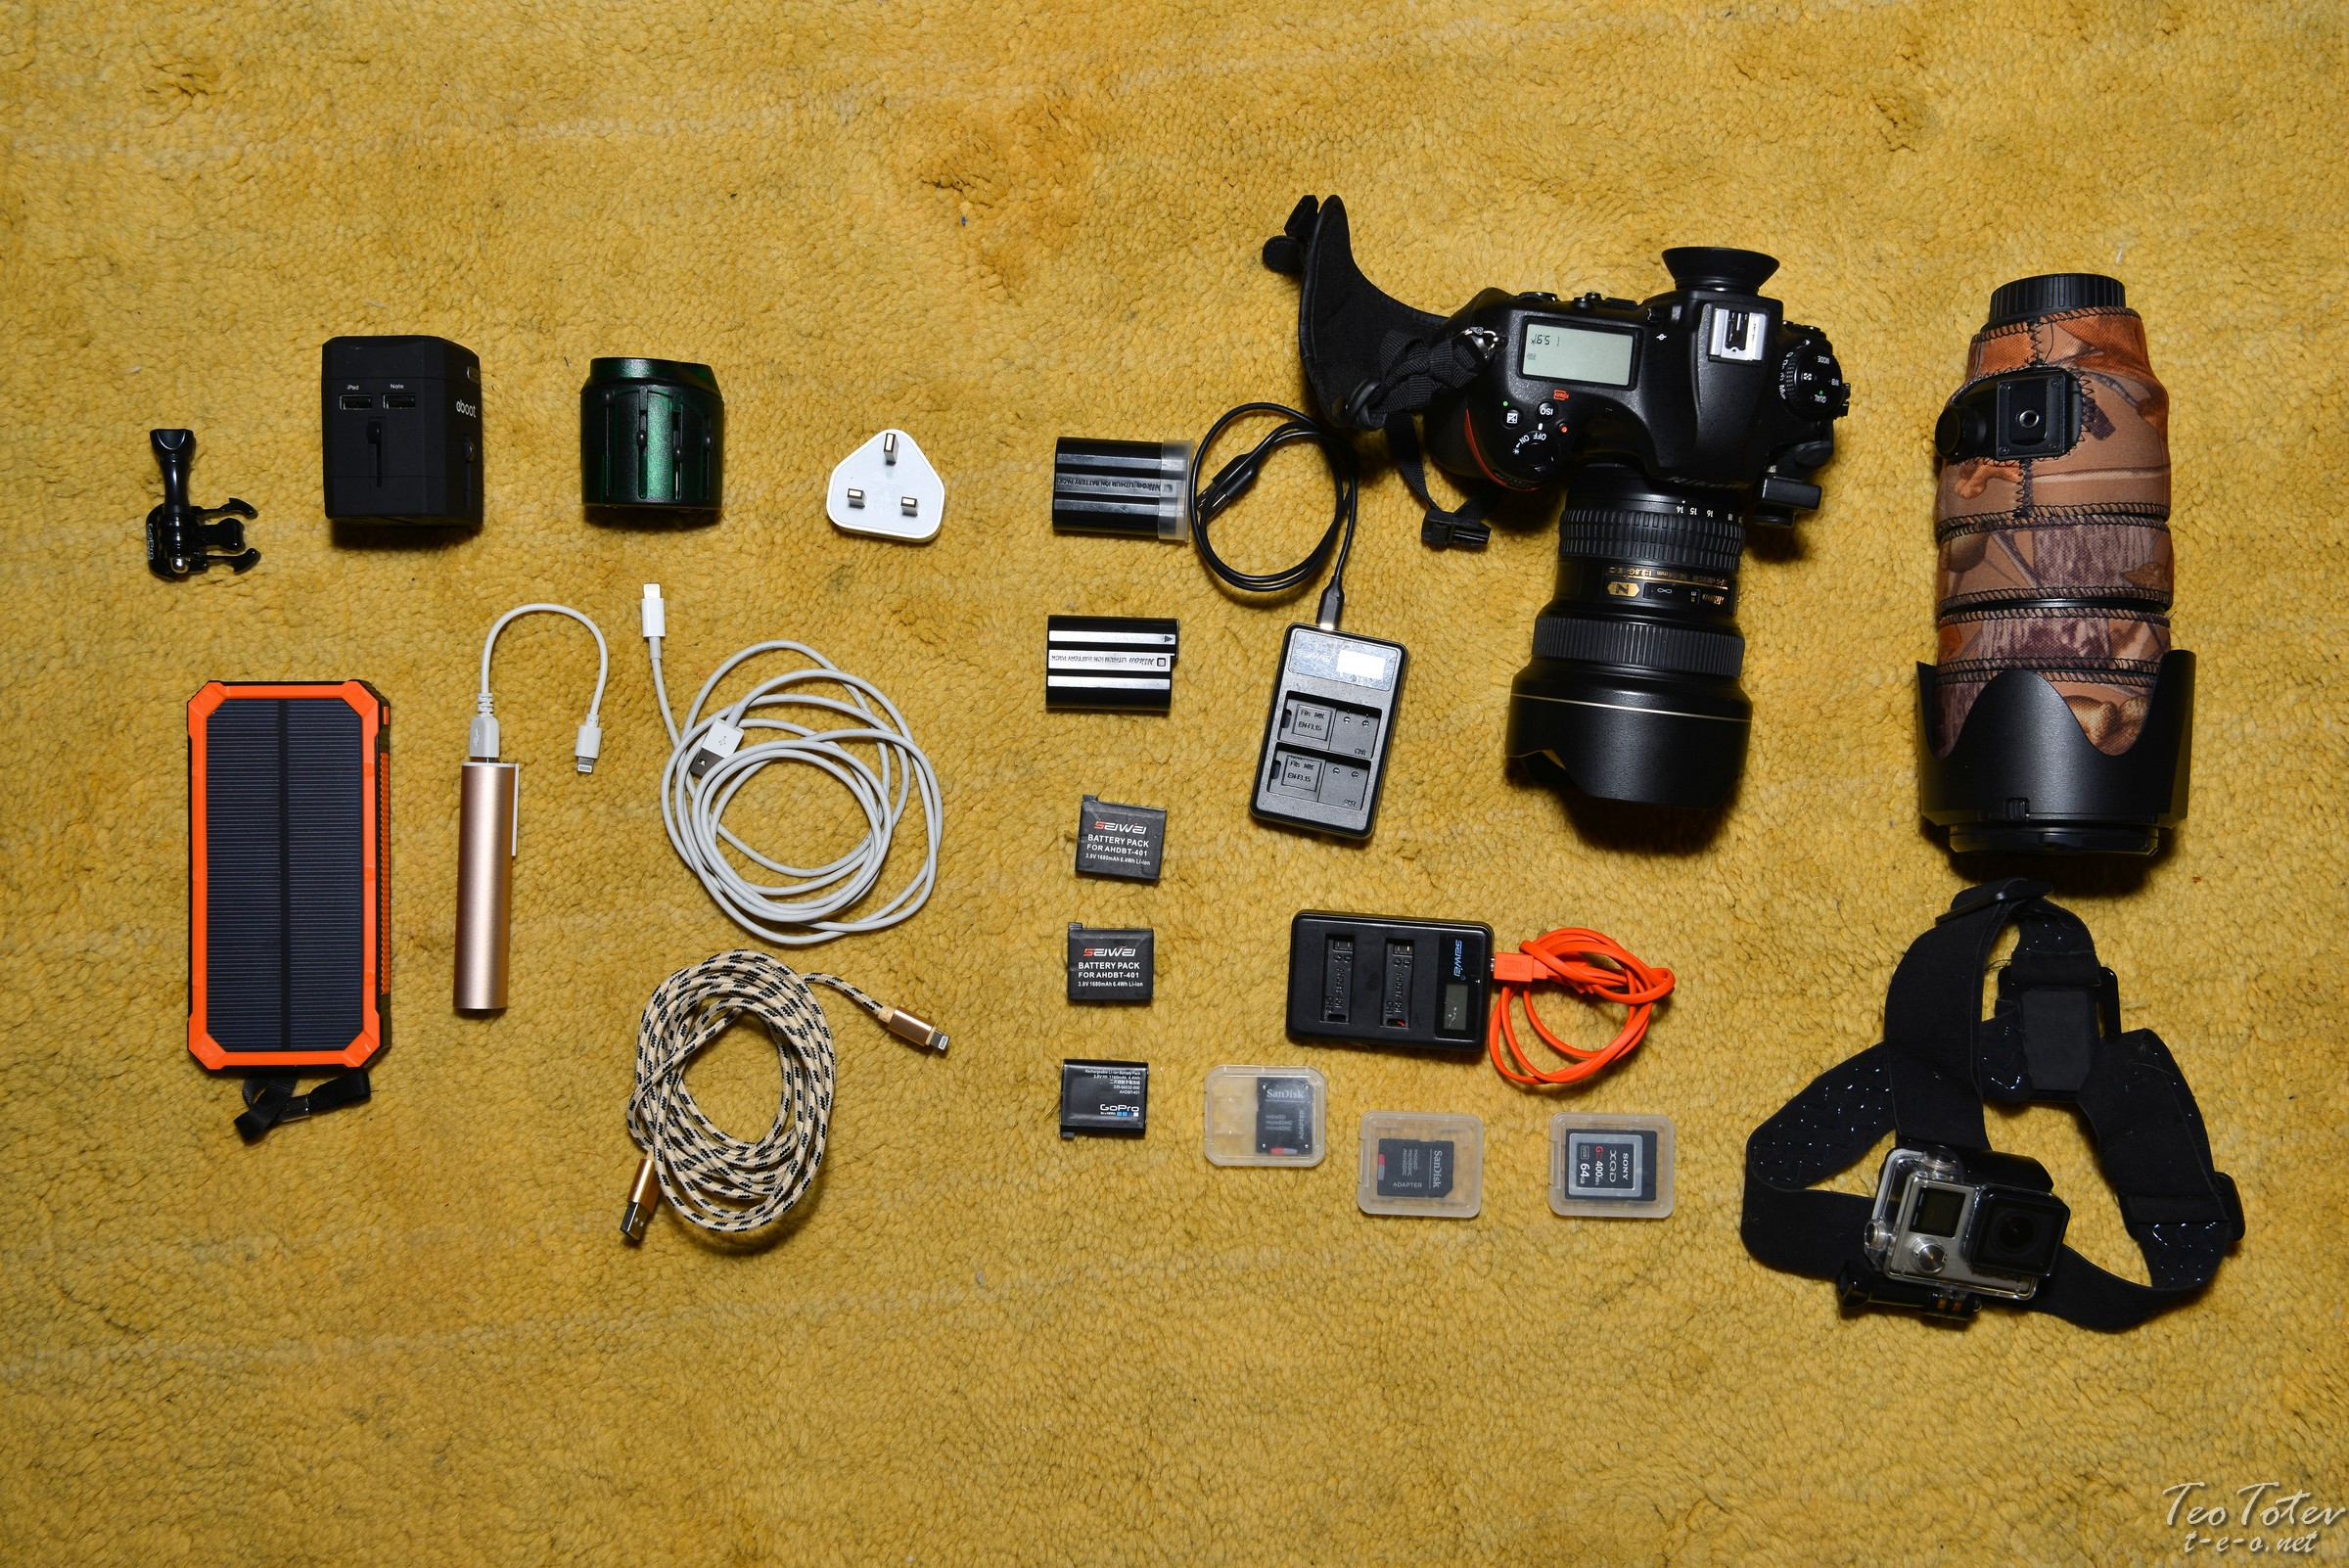 Travel Photogrpaher Minimum Travel Kit - Nikon D850, Nikkor 14-24mm, Nikkor 70-200mm f2.8, GoPro Hero4 silver, Power Banks Adapters and Batteries